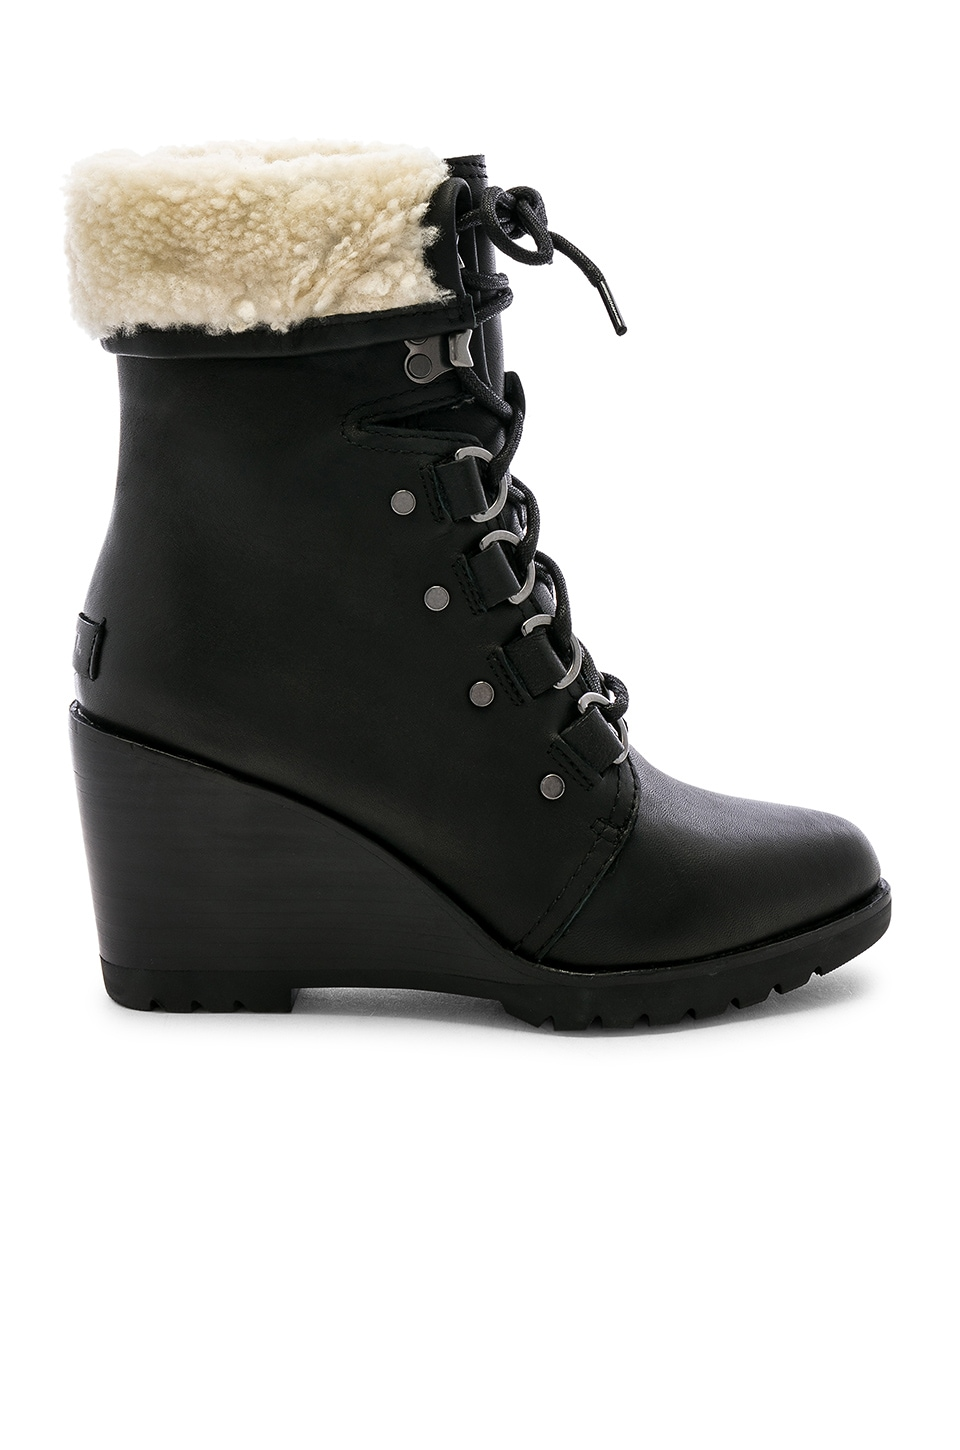 Sorel САПОГИ AFTER HOURS LACE